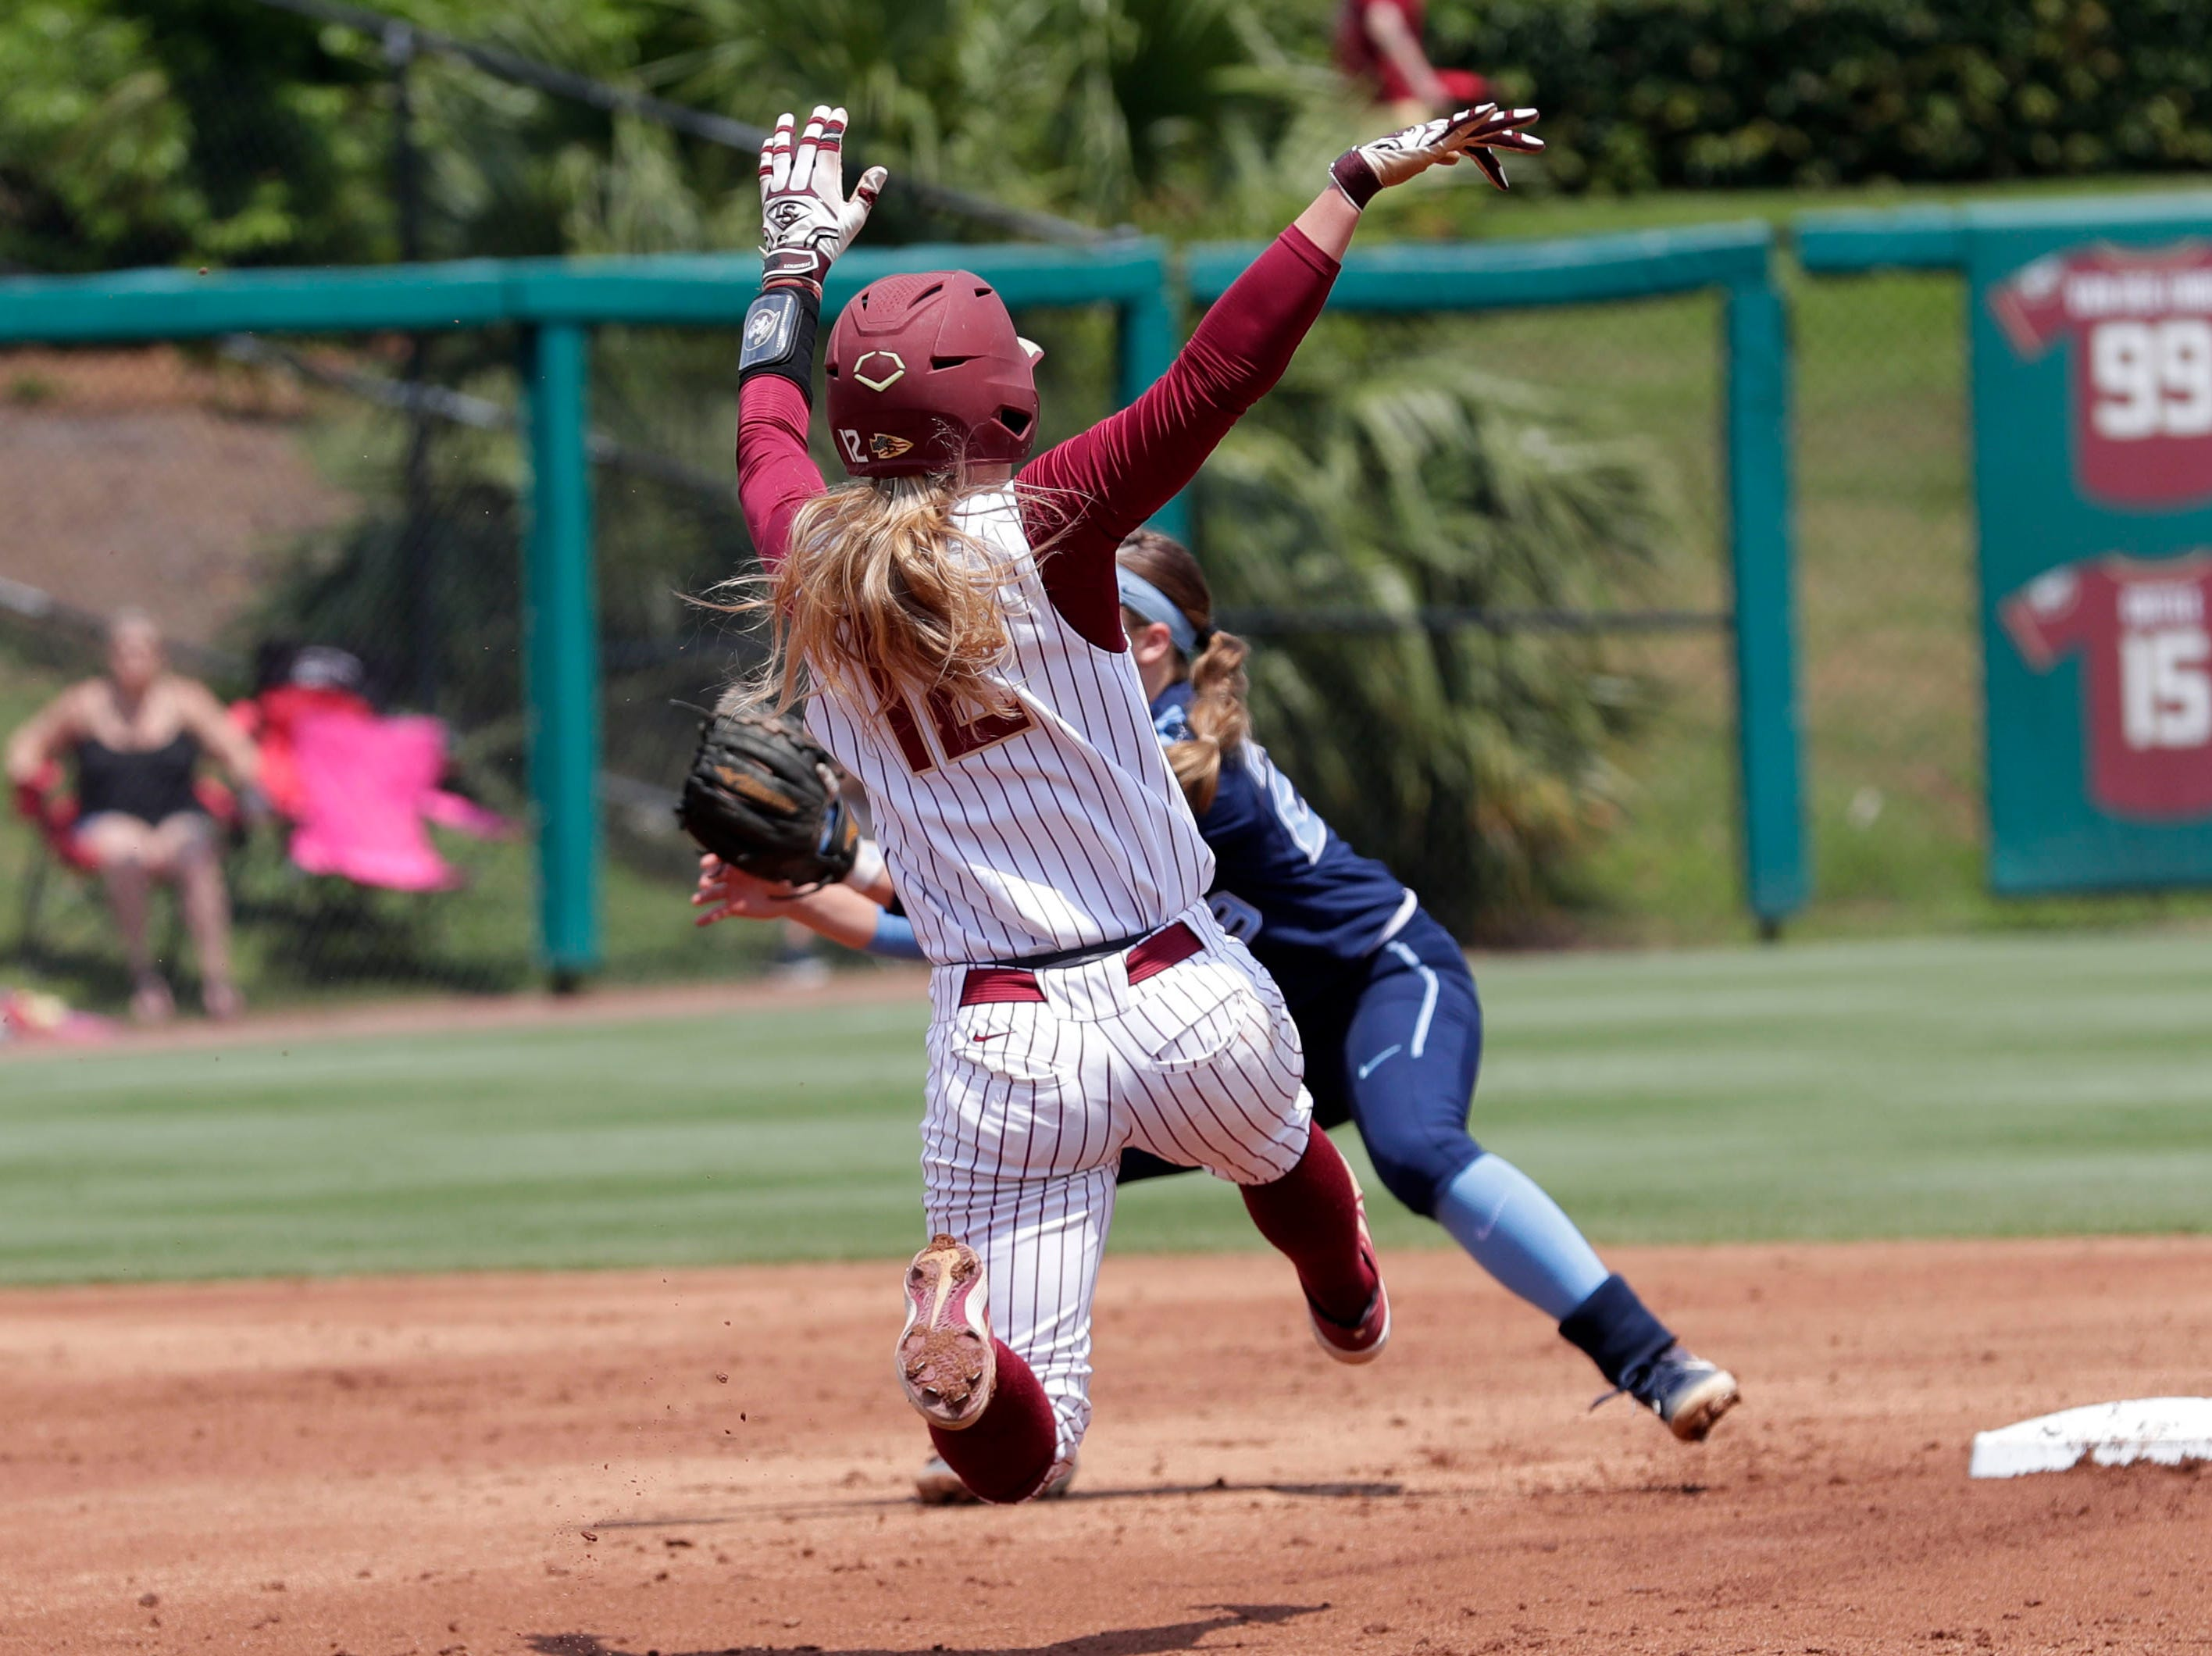 Florida State Seminoles infielder Carsyn Gordon (12) slides into second. The Florida State Seminoles host the UNC Tar Heels for the ACC Softball Tournament finals Saturday, May 11, 2019.